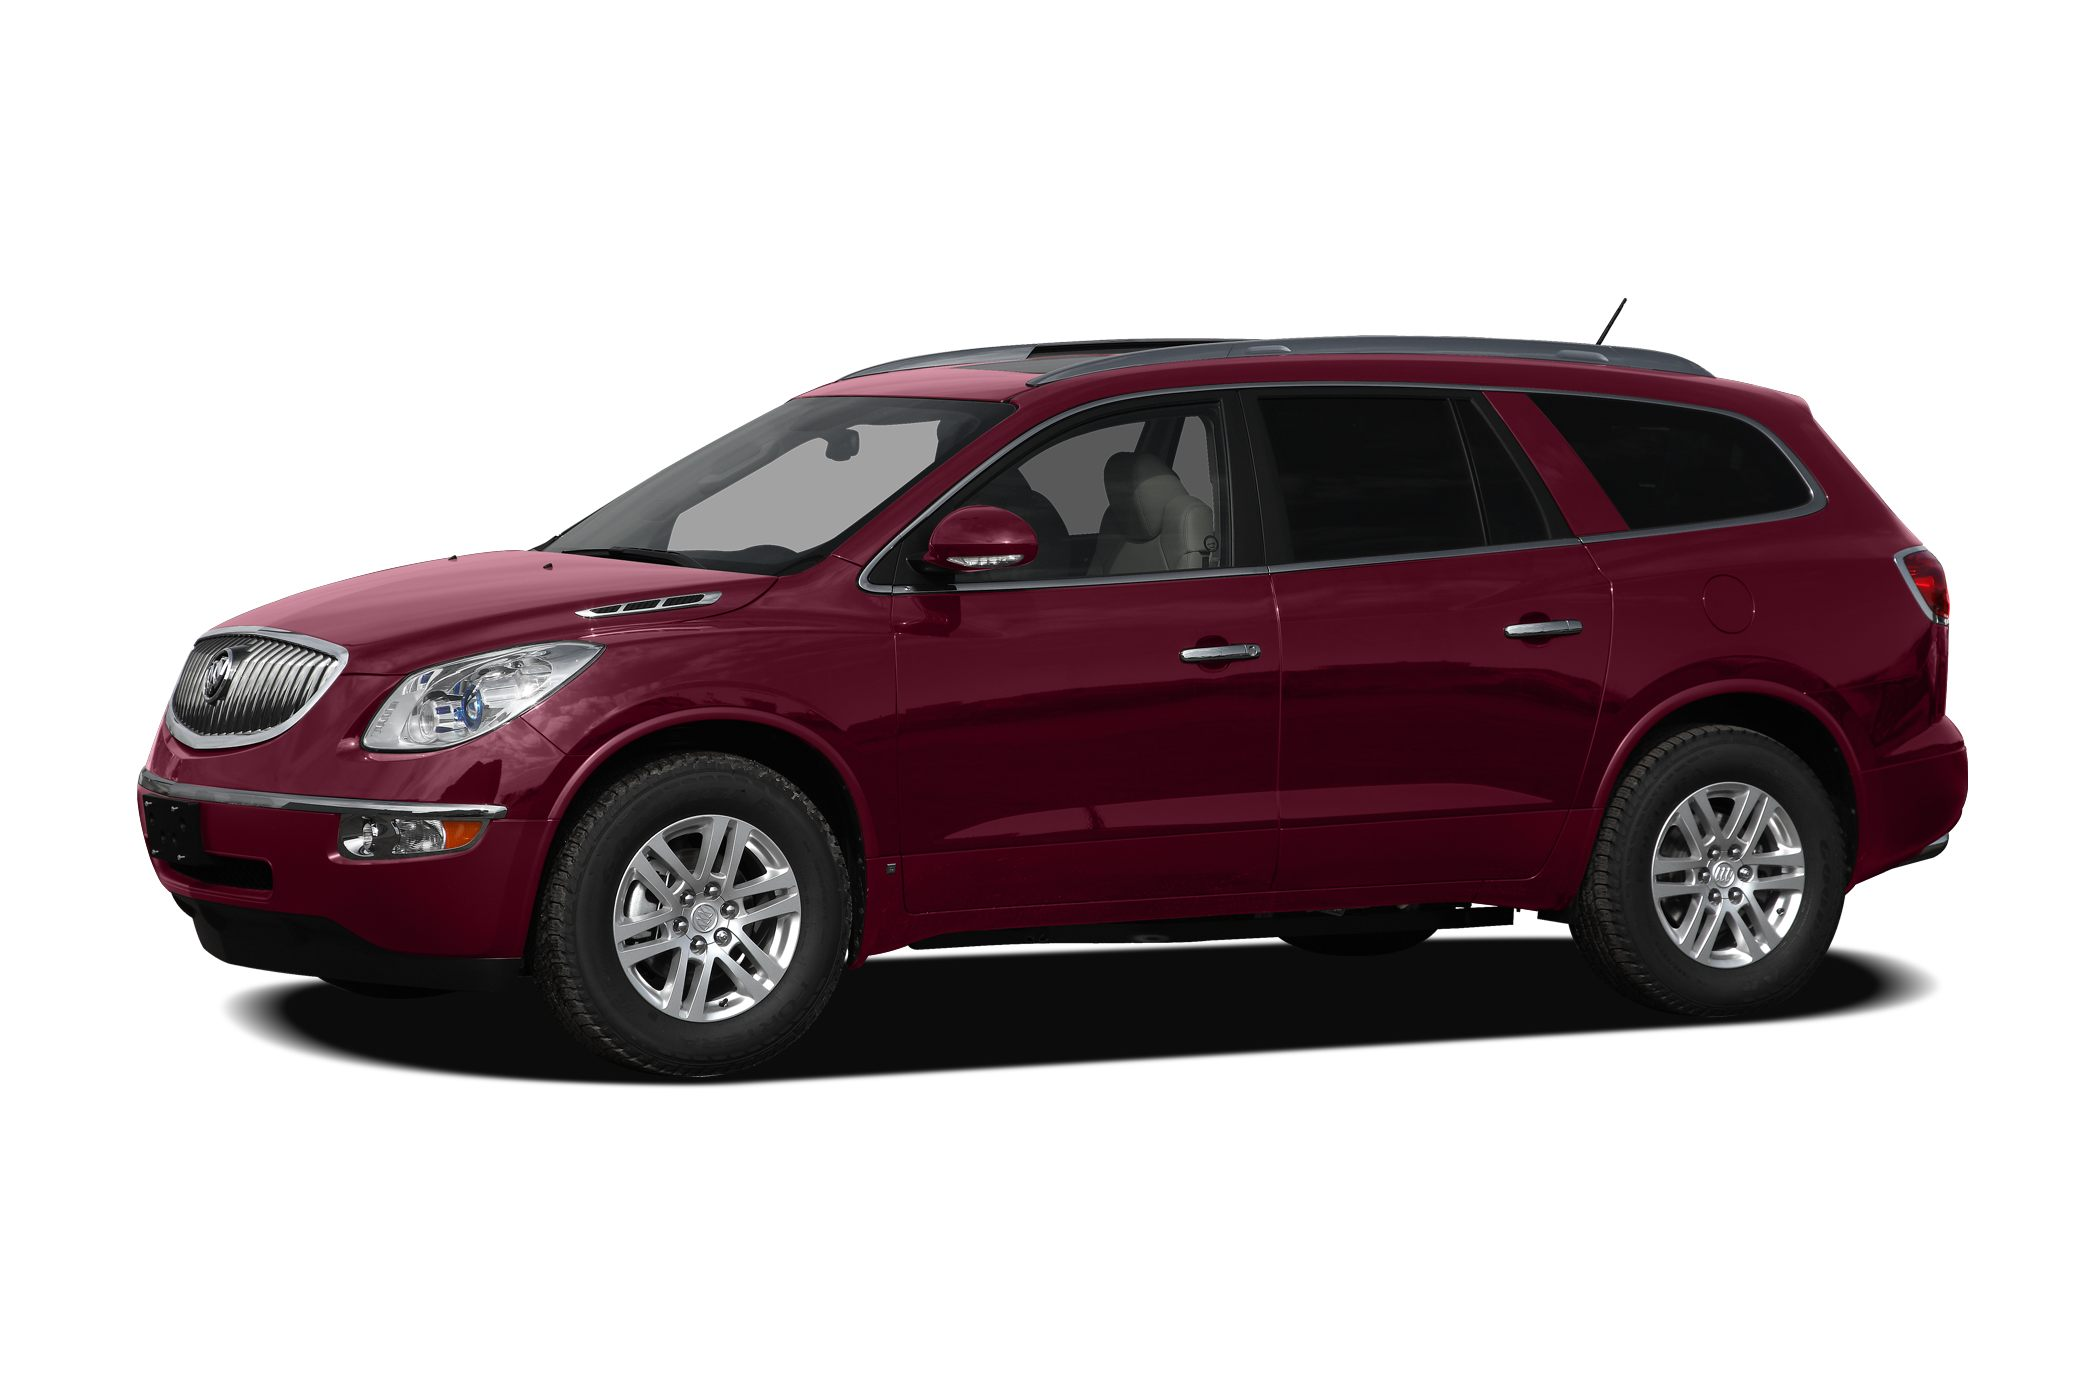 2010 Buick Enclave 1XL SUV for sale in Midland for $24,289 with 59,432 miles.